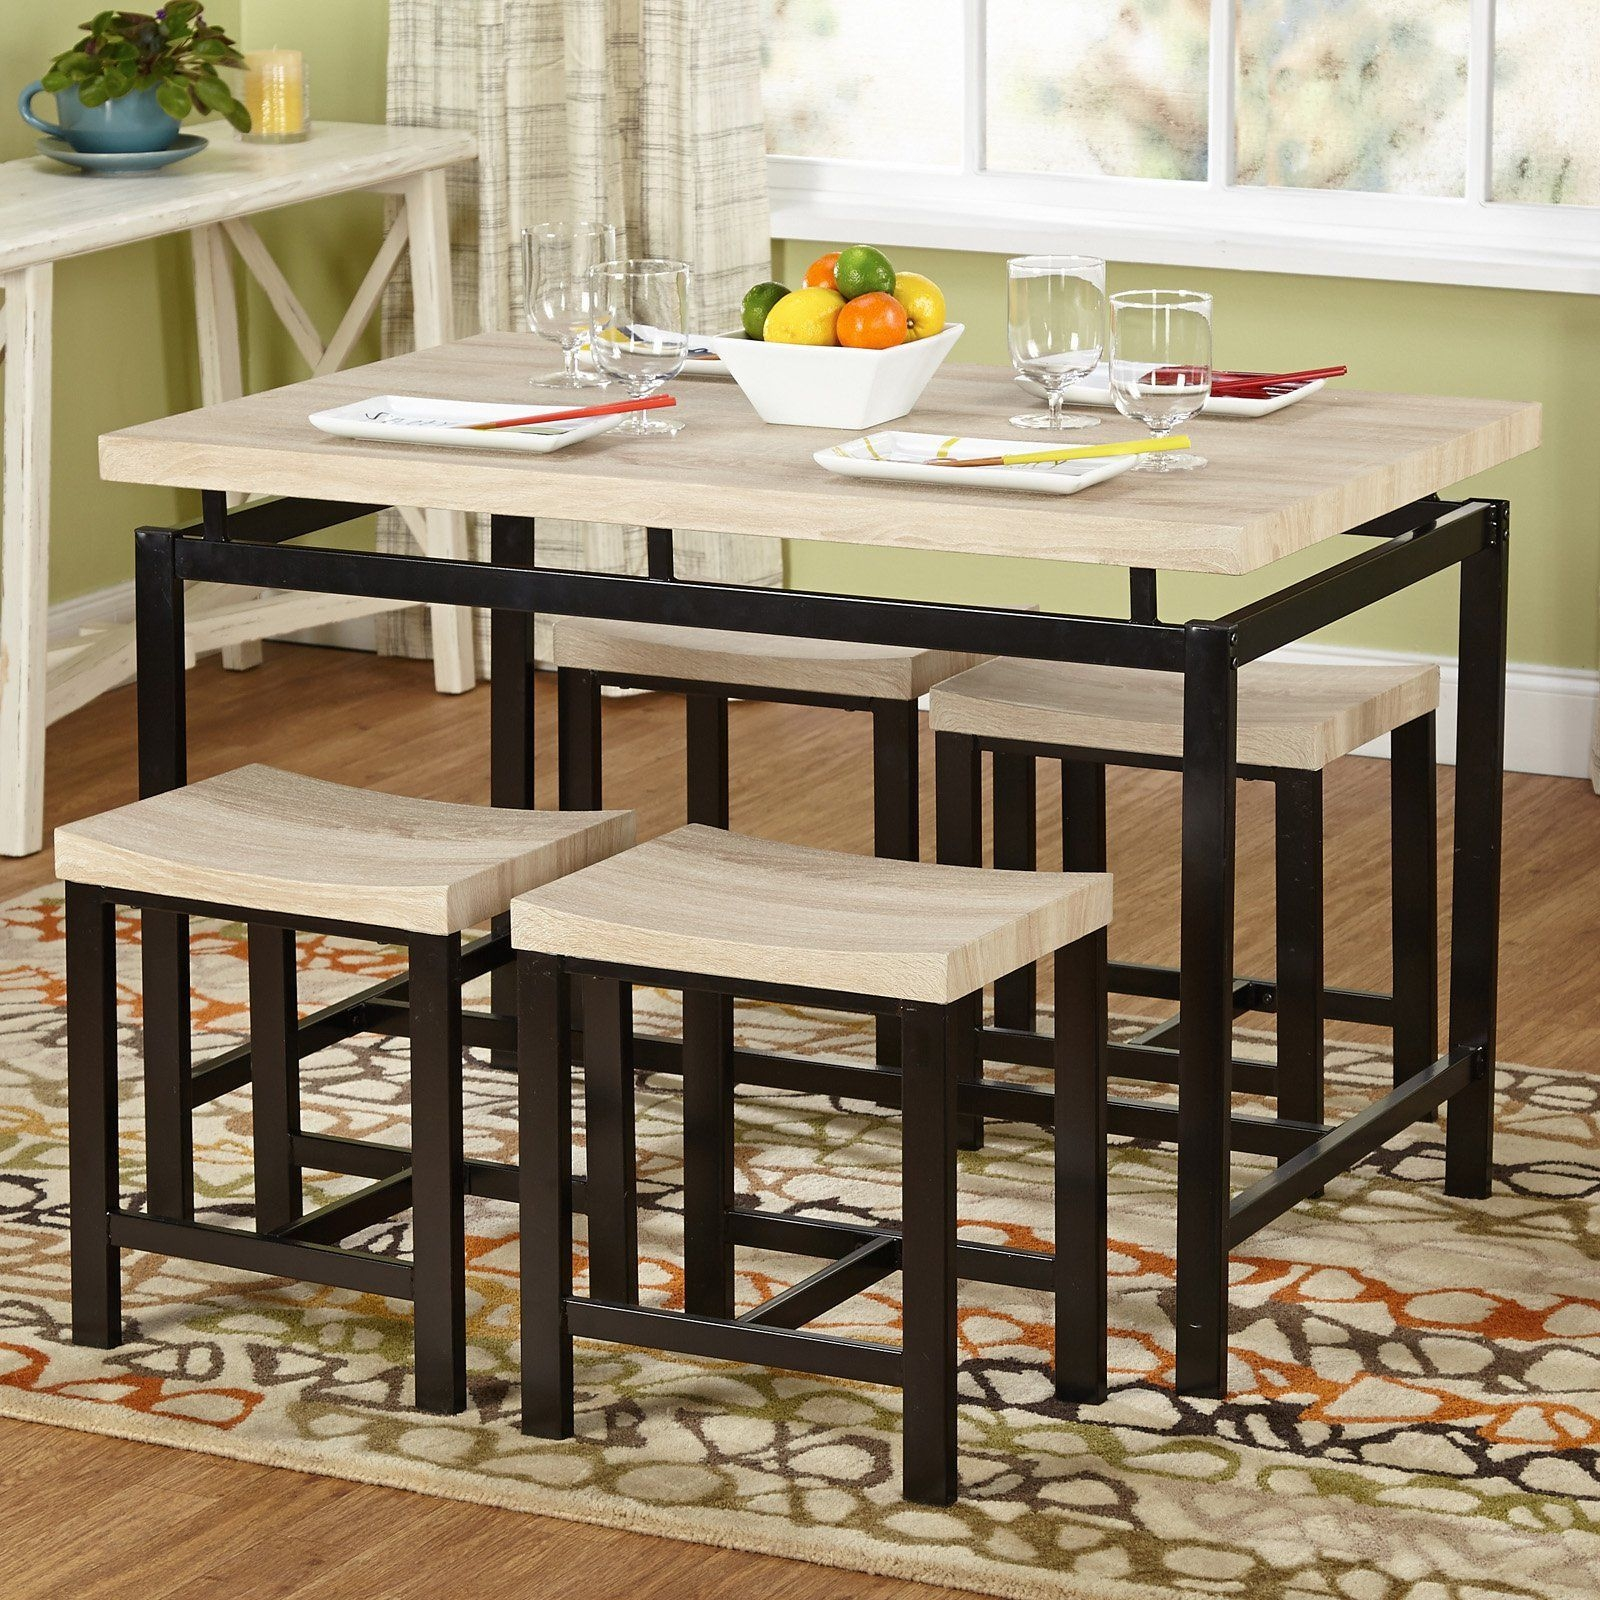 Target Marketing Systems Delano 5 Piece Dining Table Set  From Hayneedle  Dining Furniture